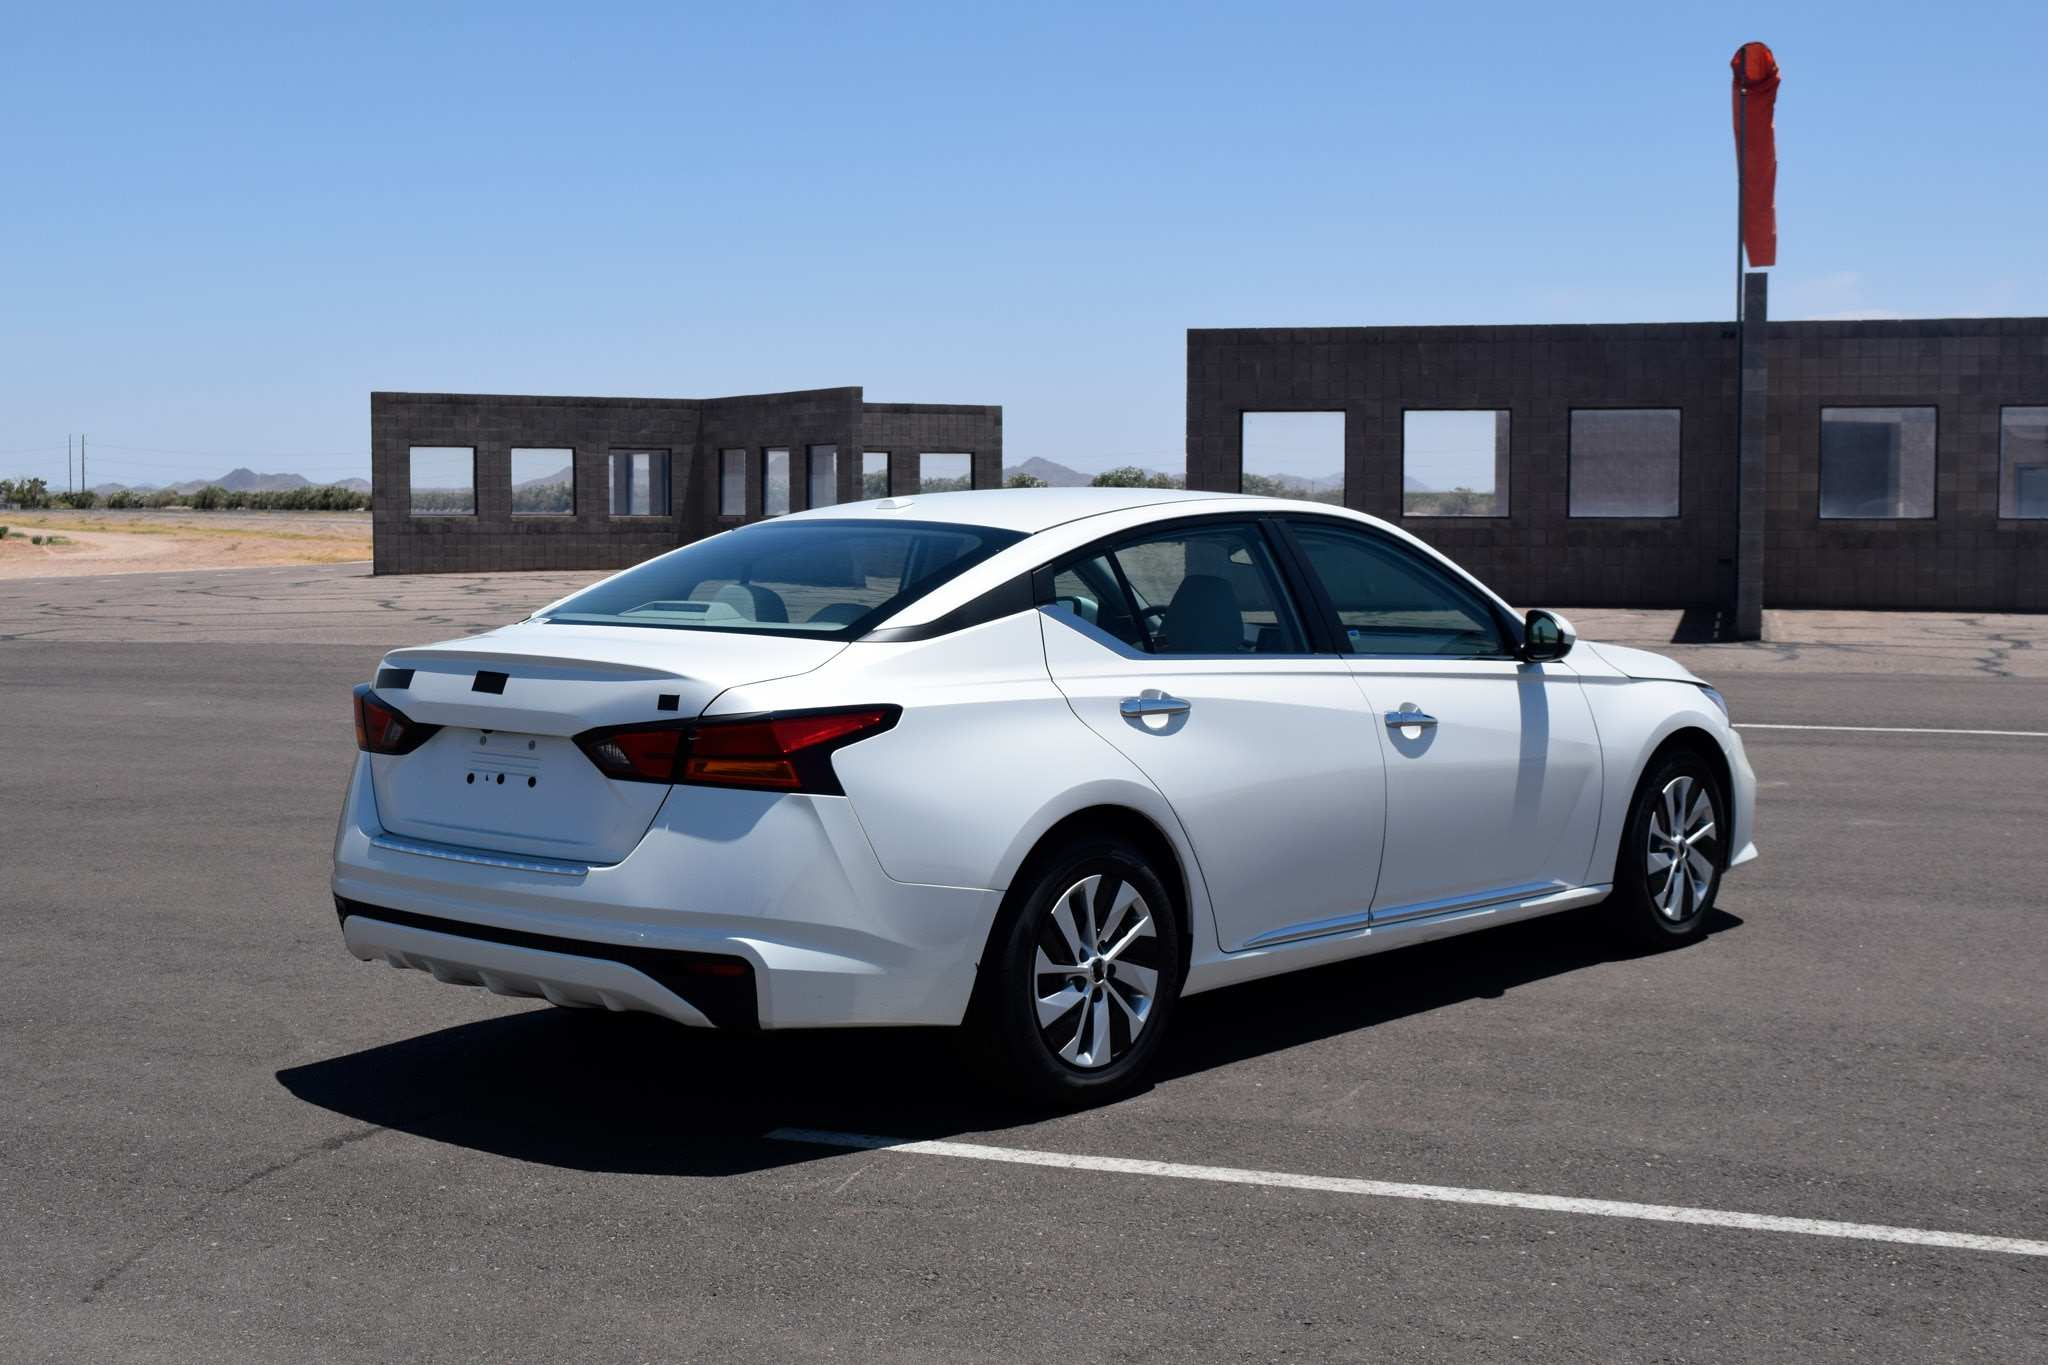 93 All New Nissan Altima 2019 Horsepower Exterior and Interior with Nissan Altima 2019 Horsepower